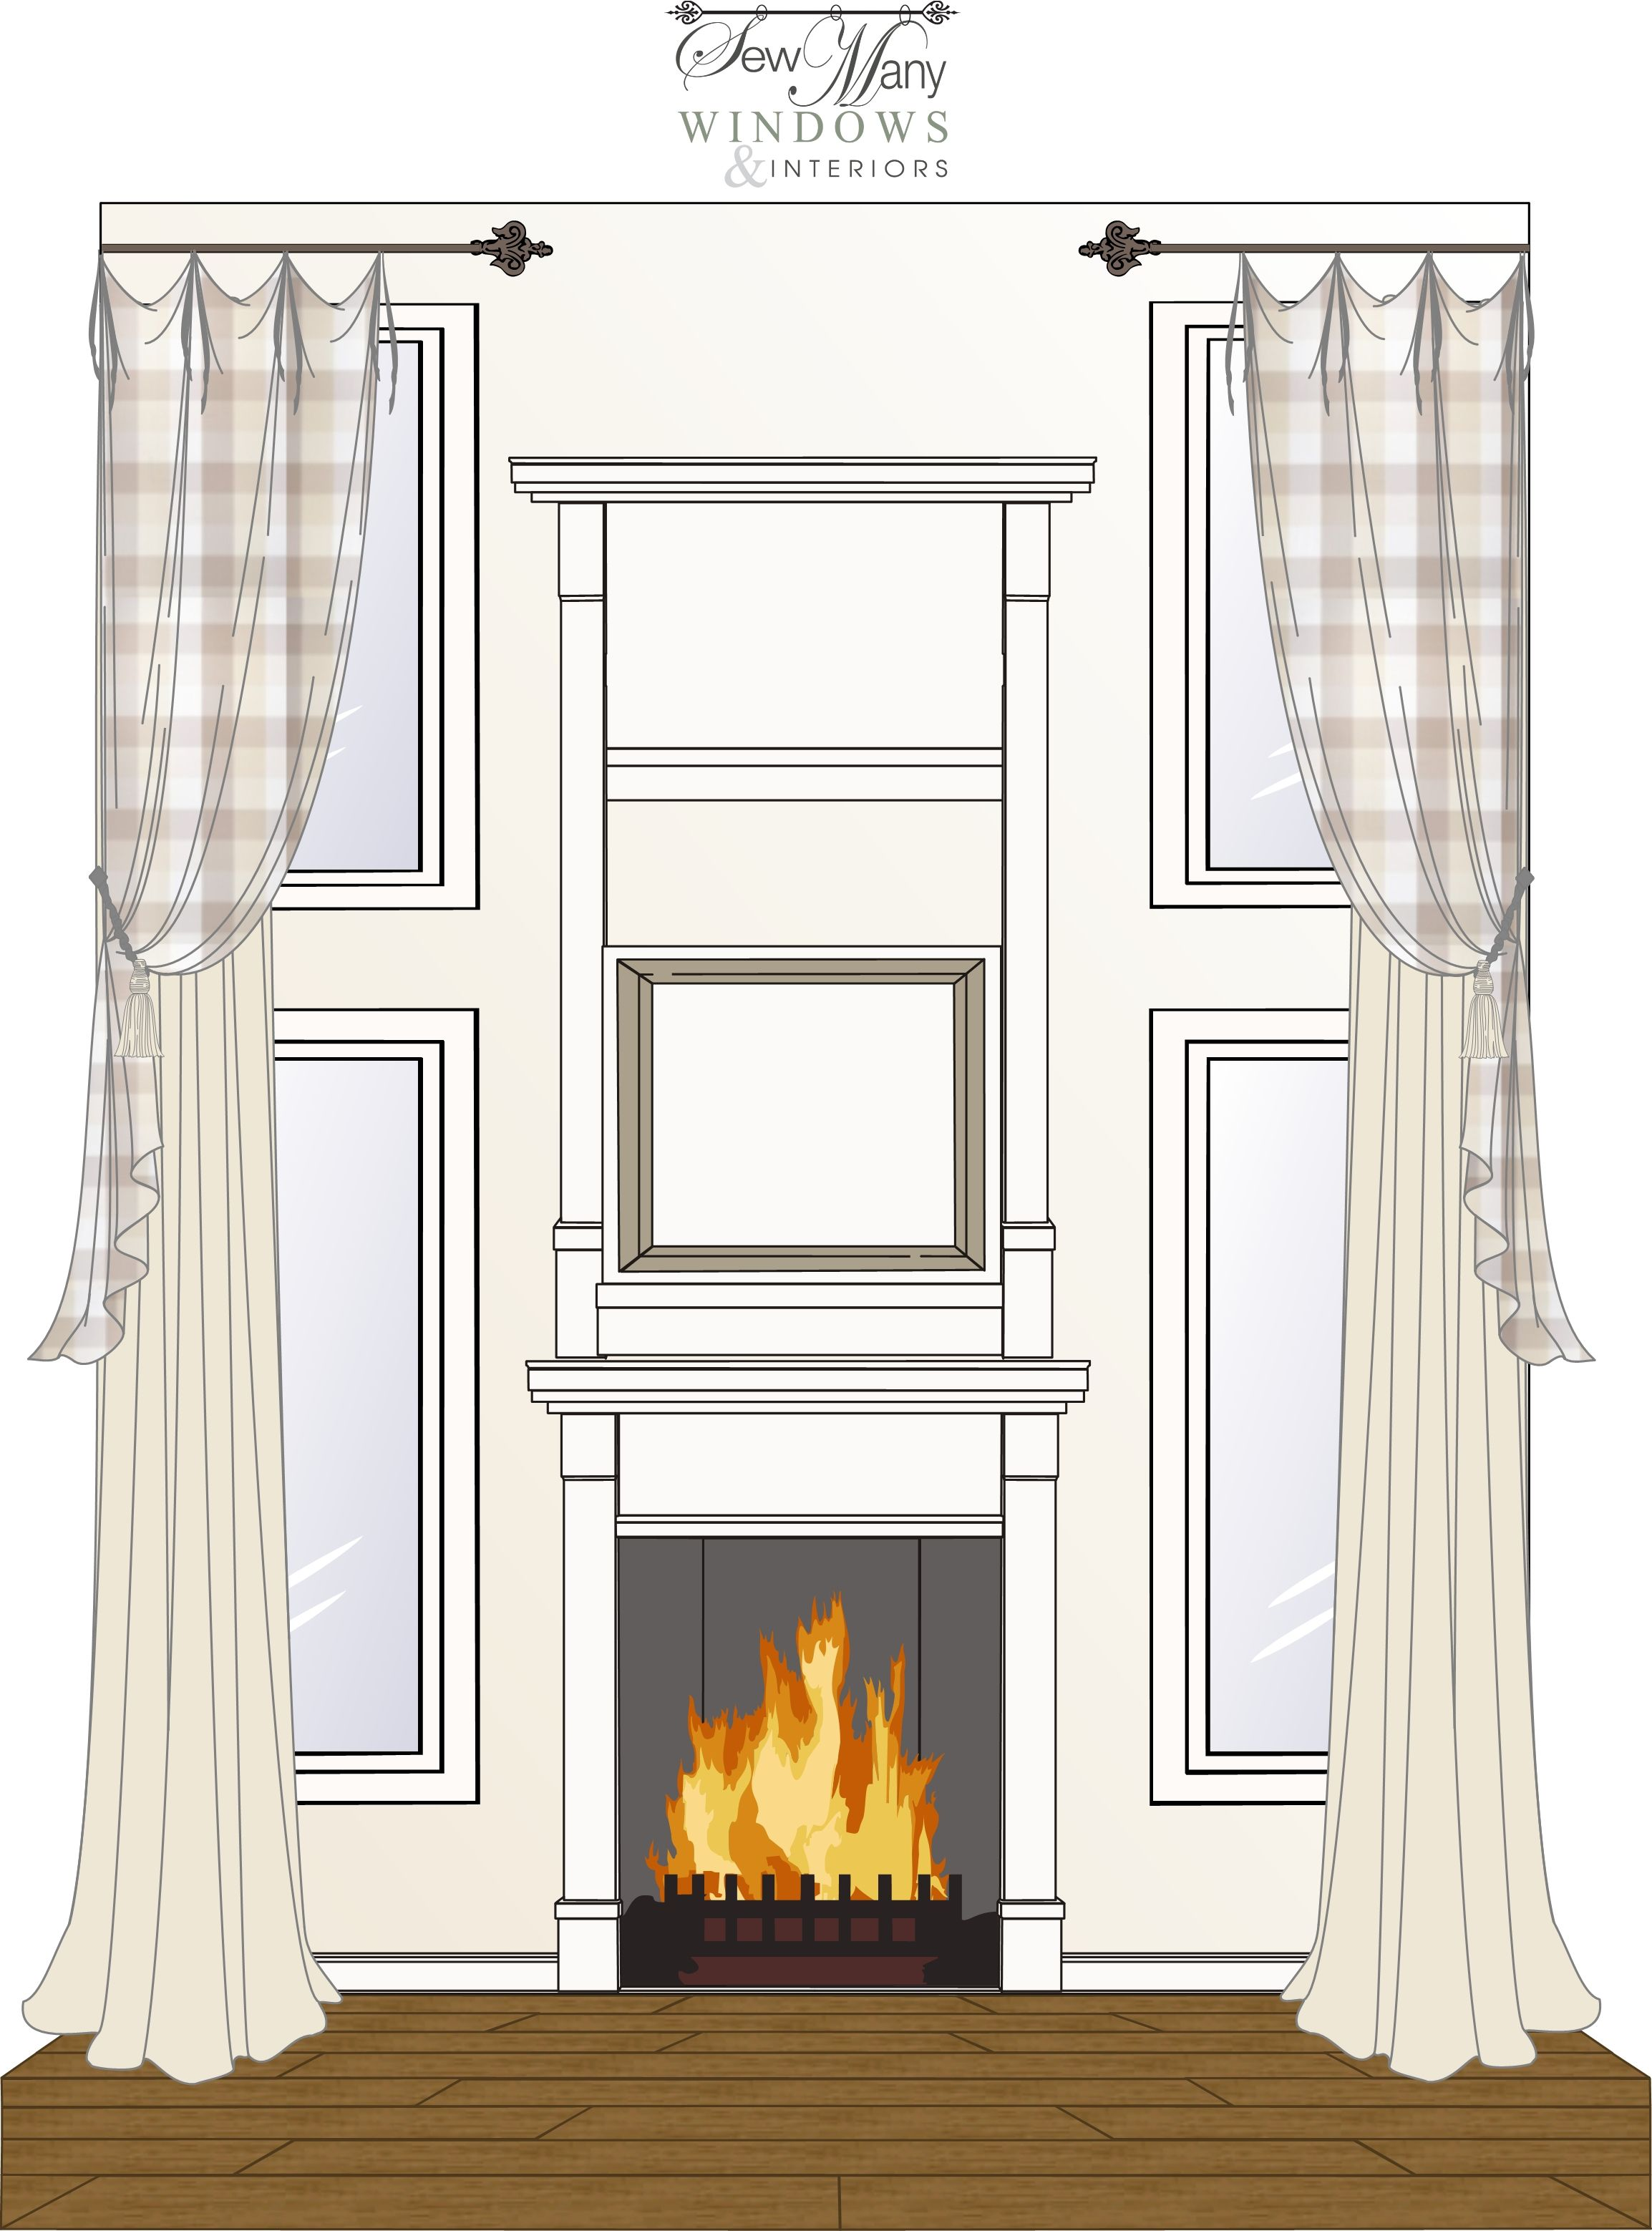 Window coverings for 2 story windows  drapery on two story windows add elegance and grandeur  window